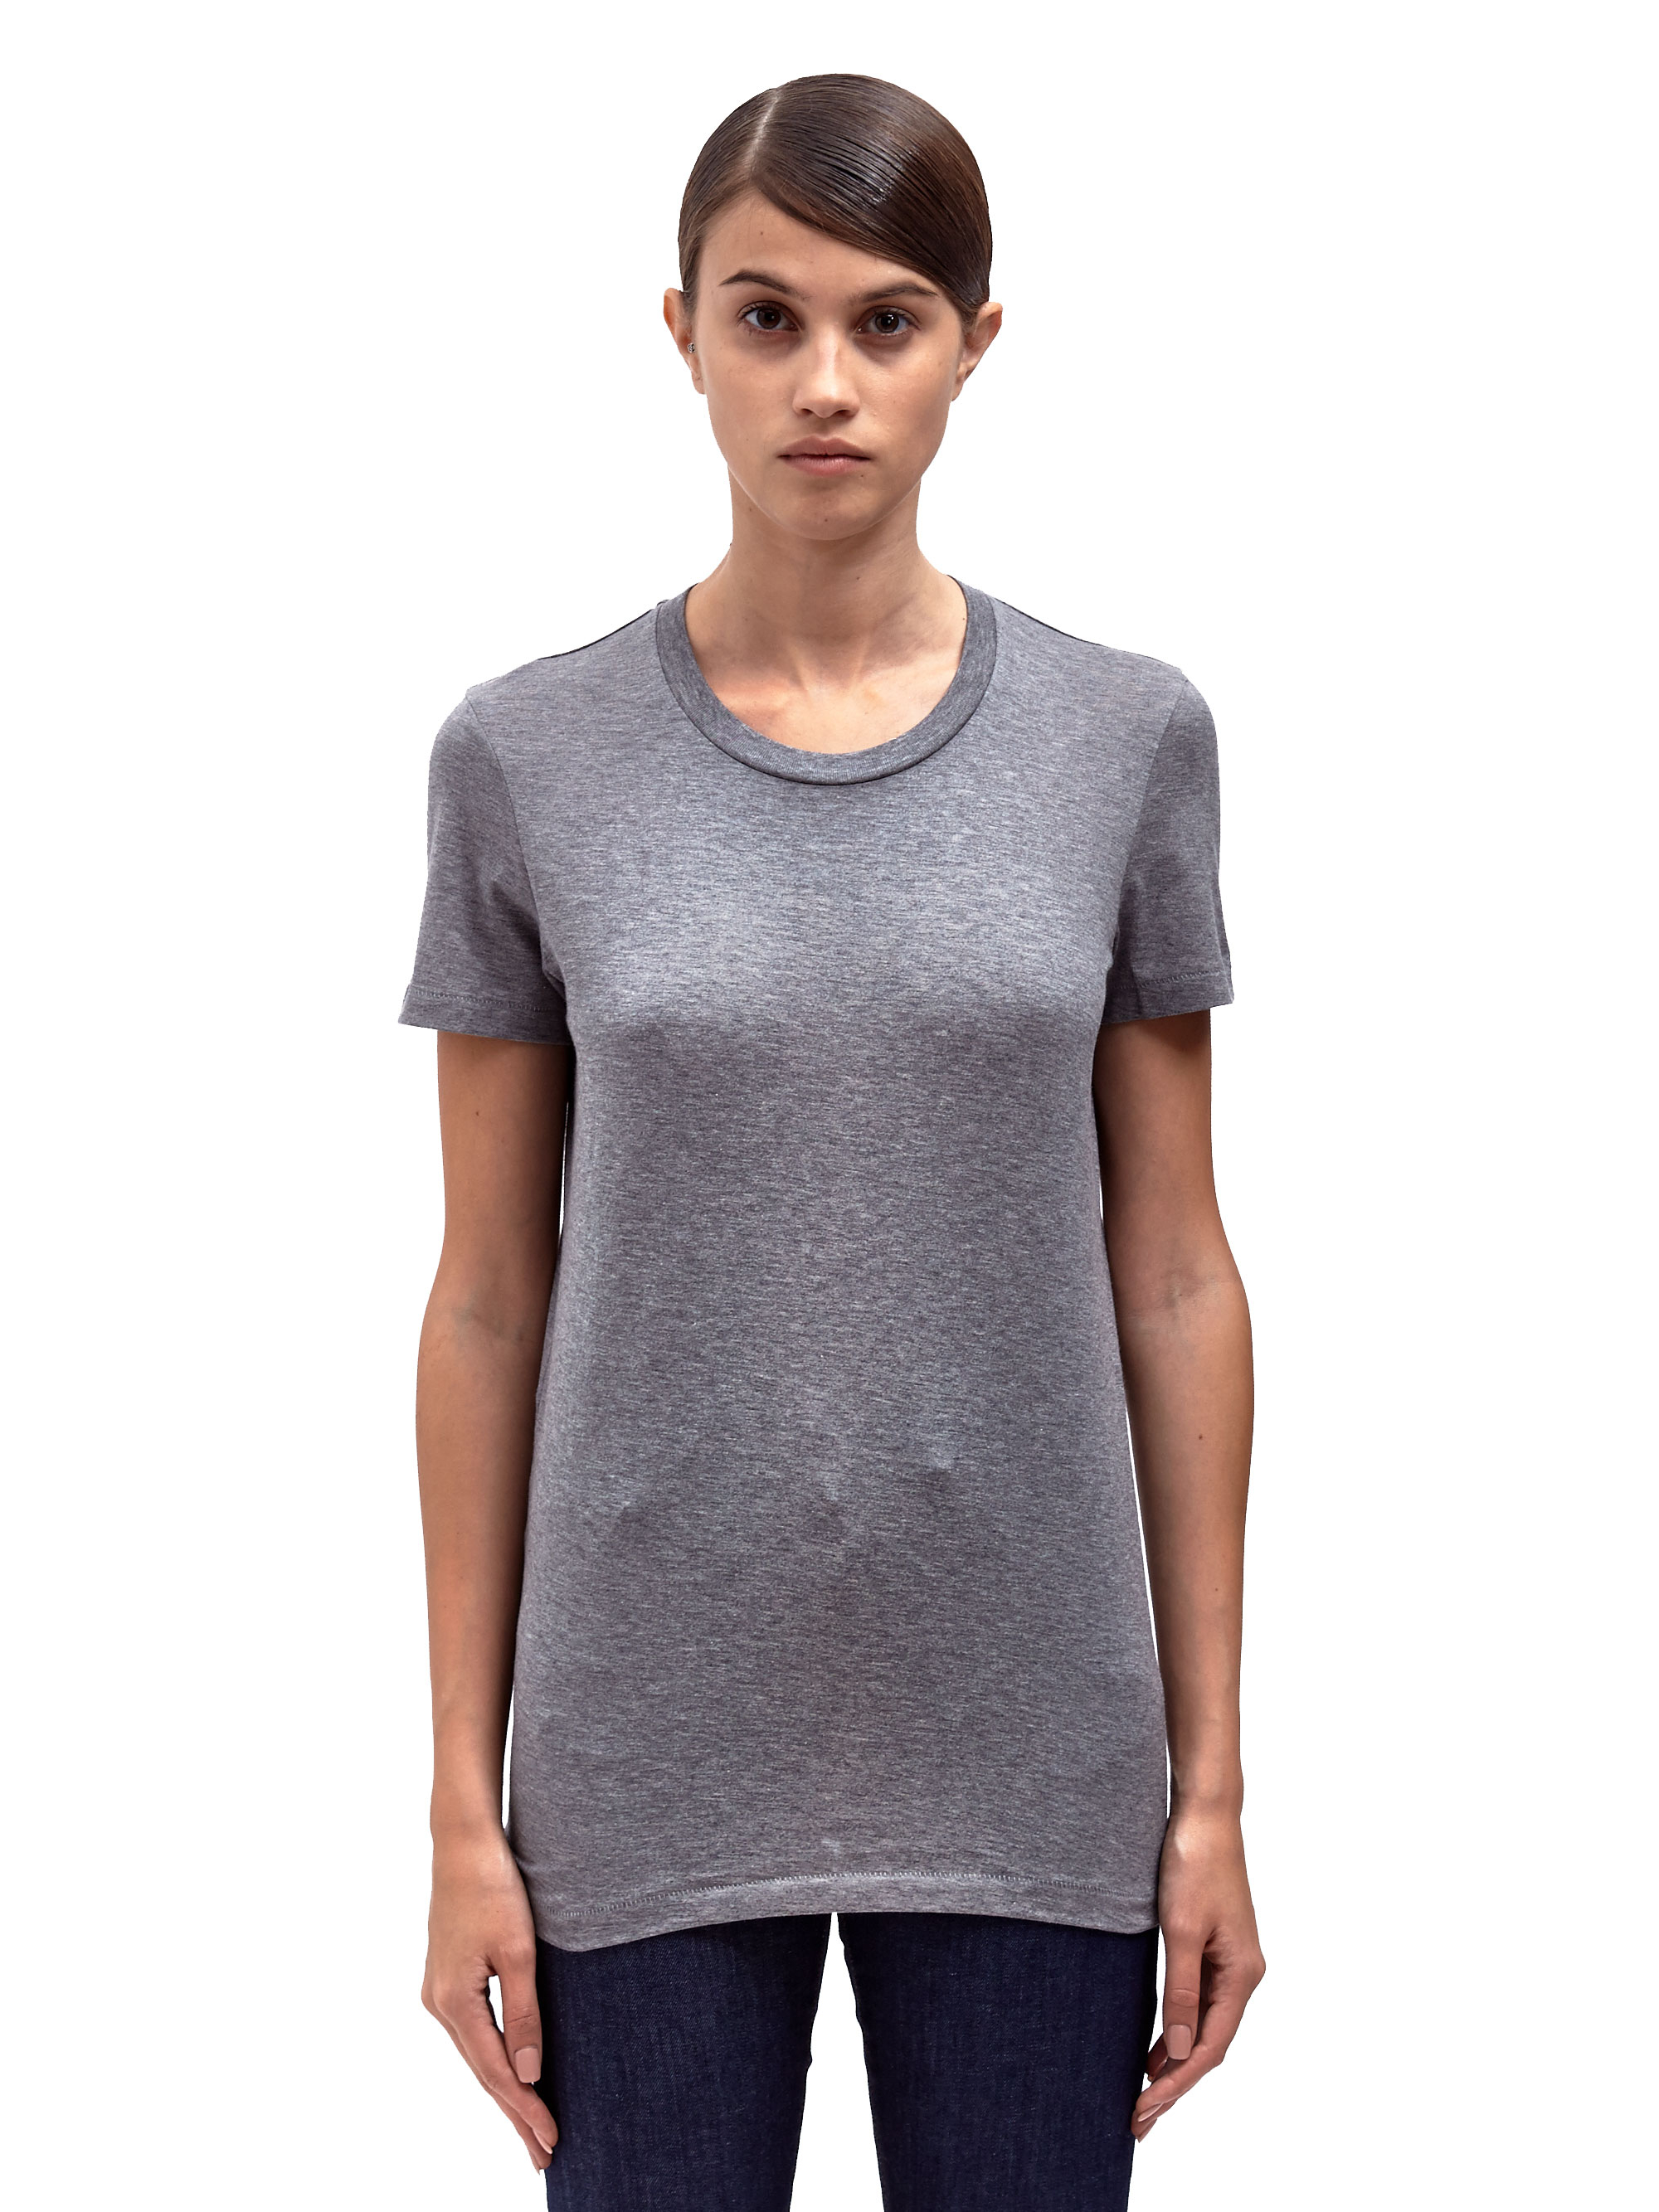 Acne T Shirt Women